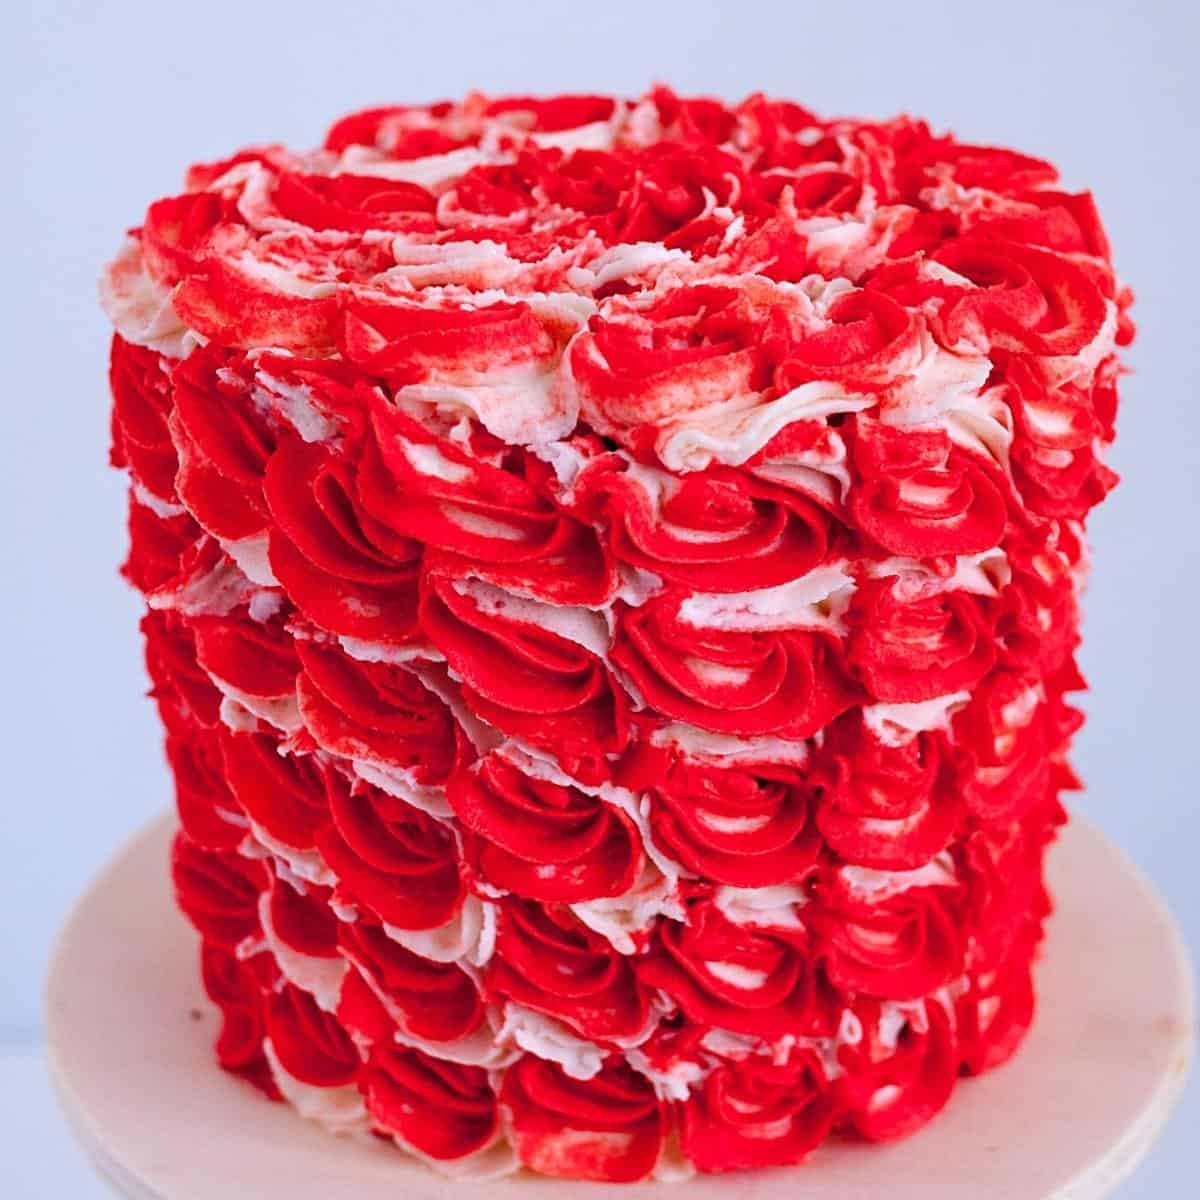 A red frosted cake for red velvet.